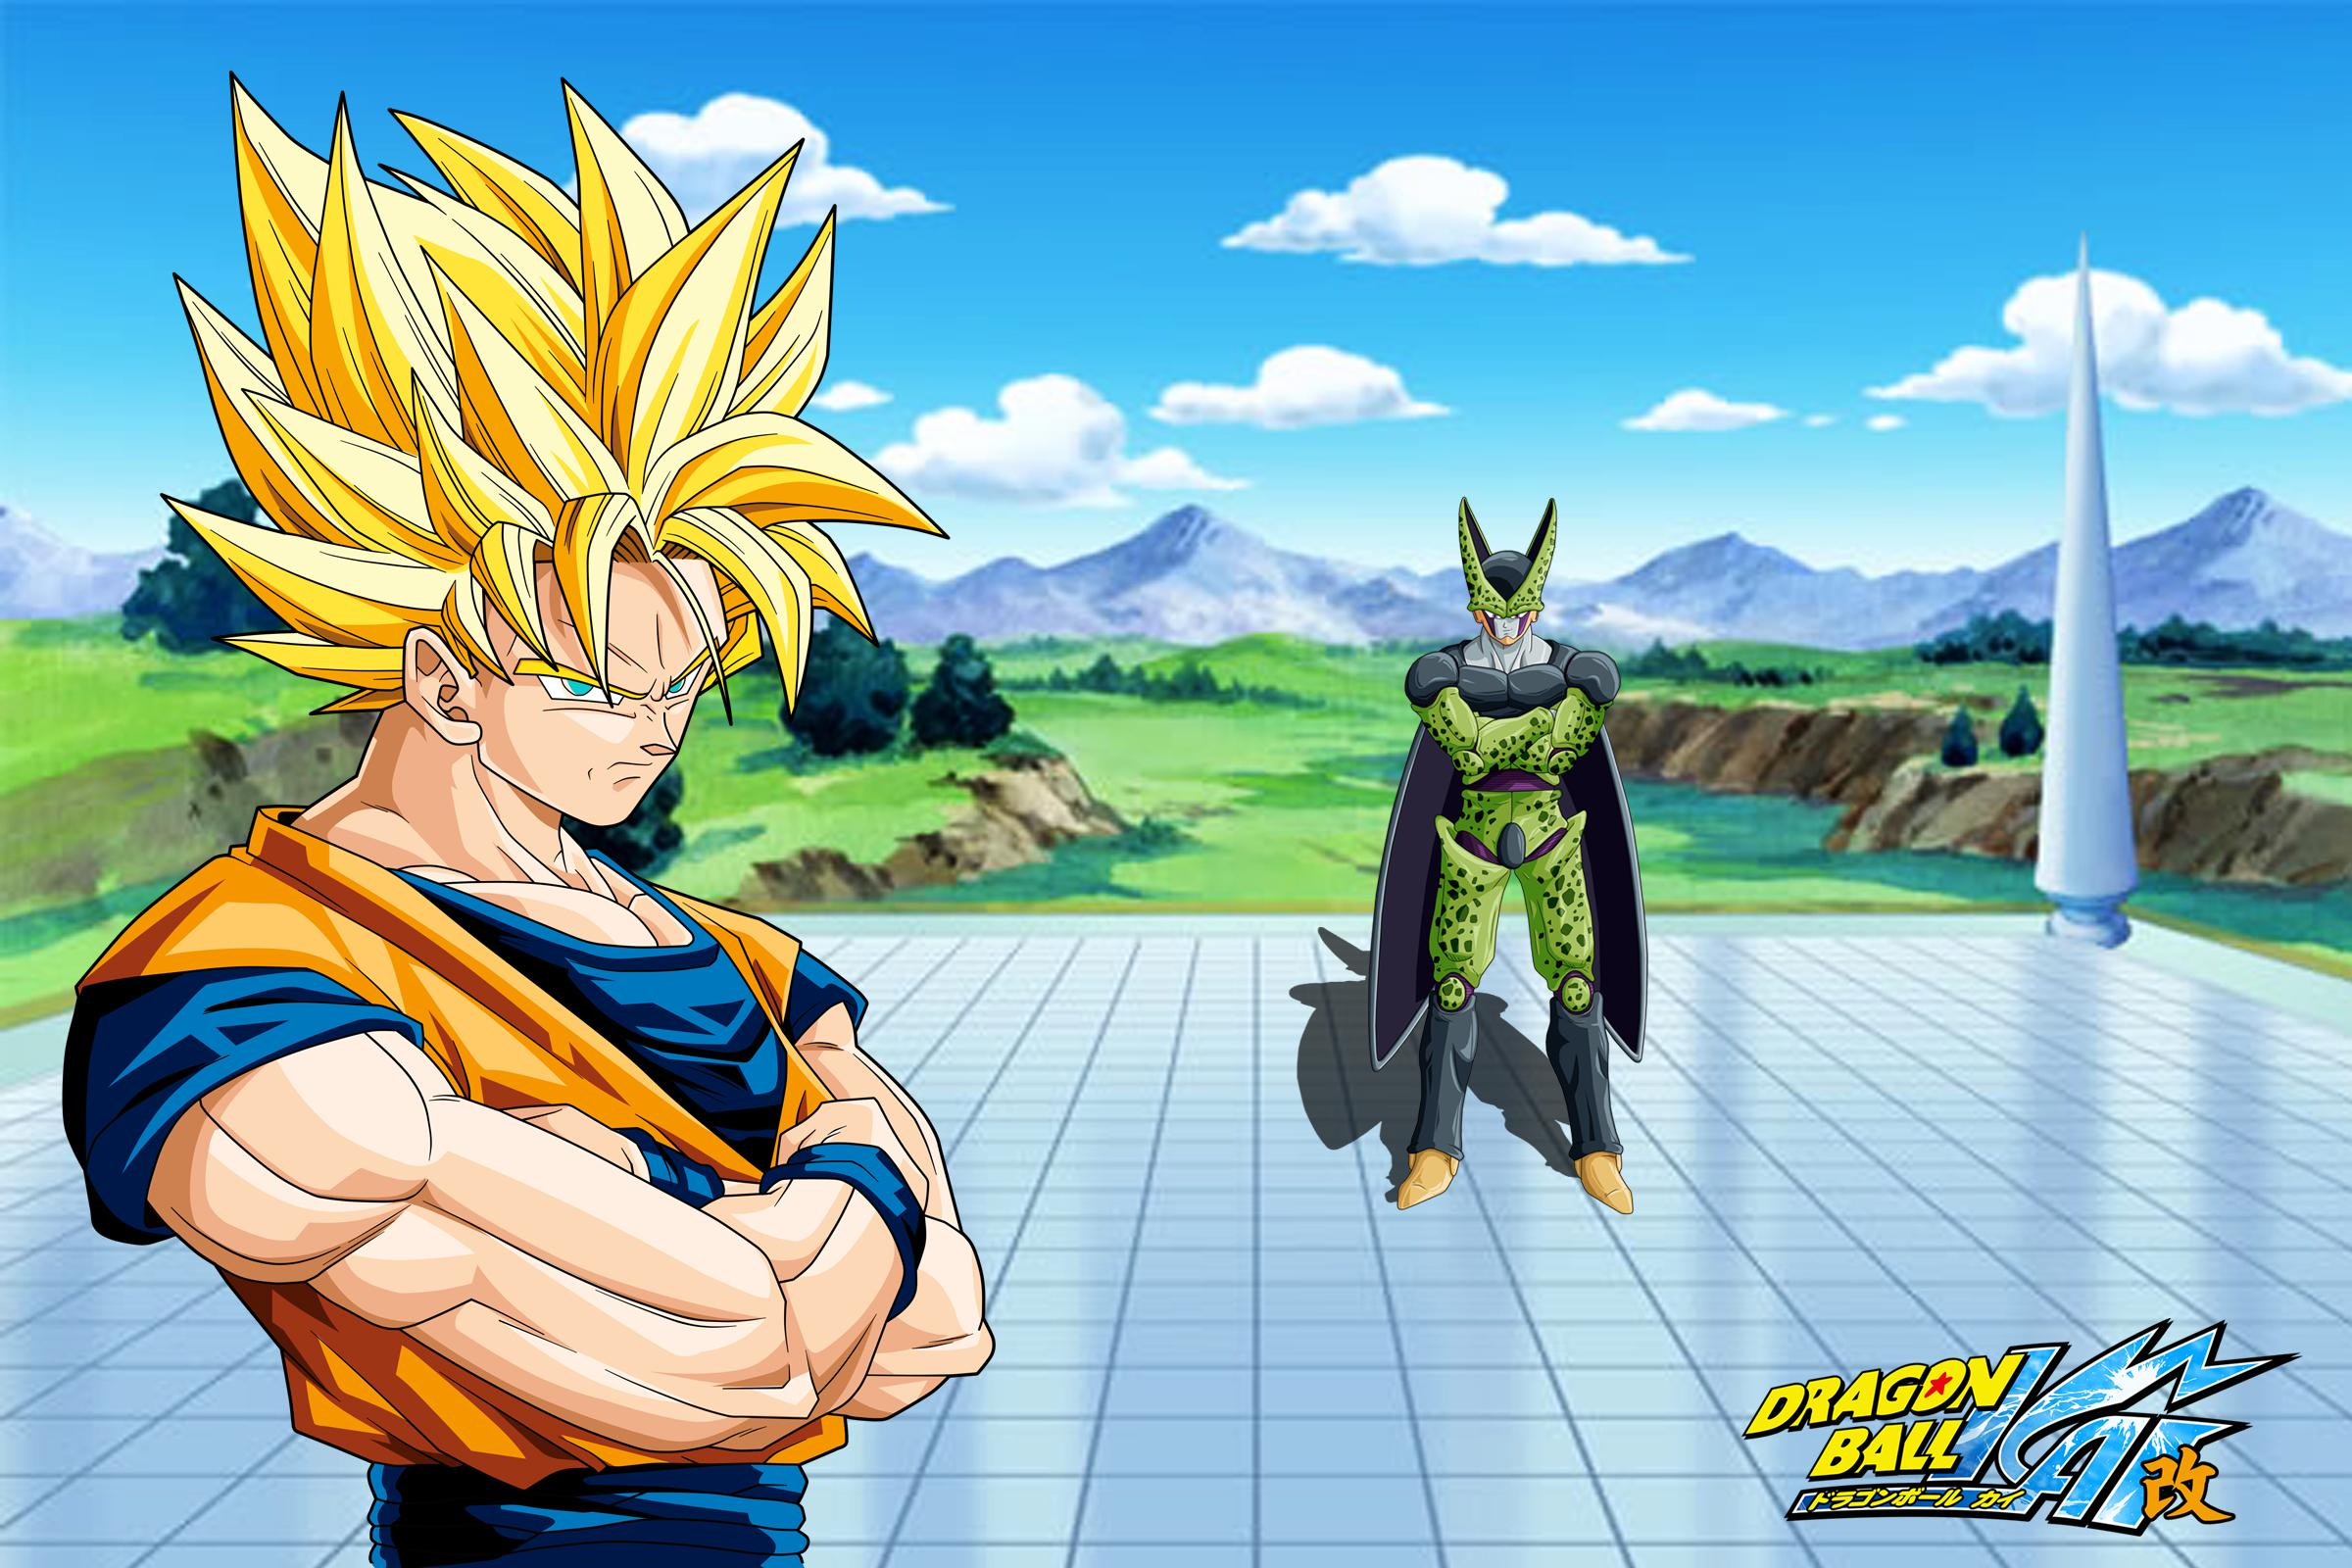 Dragon ball z wallpapers pictures images - Images dragon ball z ...